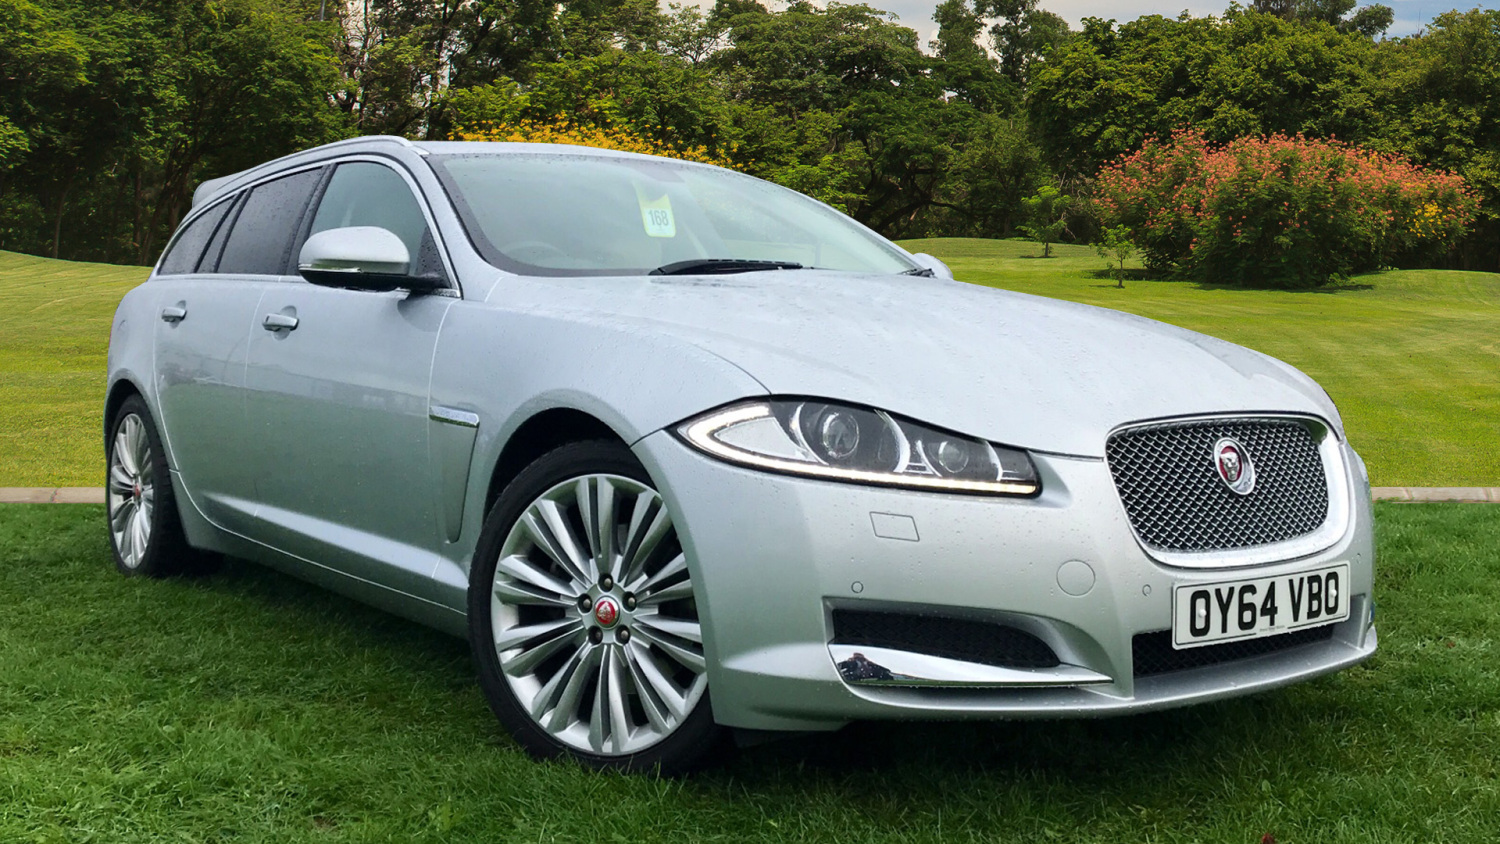 used jaguar xf 2 2d 200 portfolio 5dr auto diesel estate for sale in scotland macklin motors. Black Bedroom Furniture Sets. Home Design Ideas